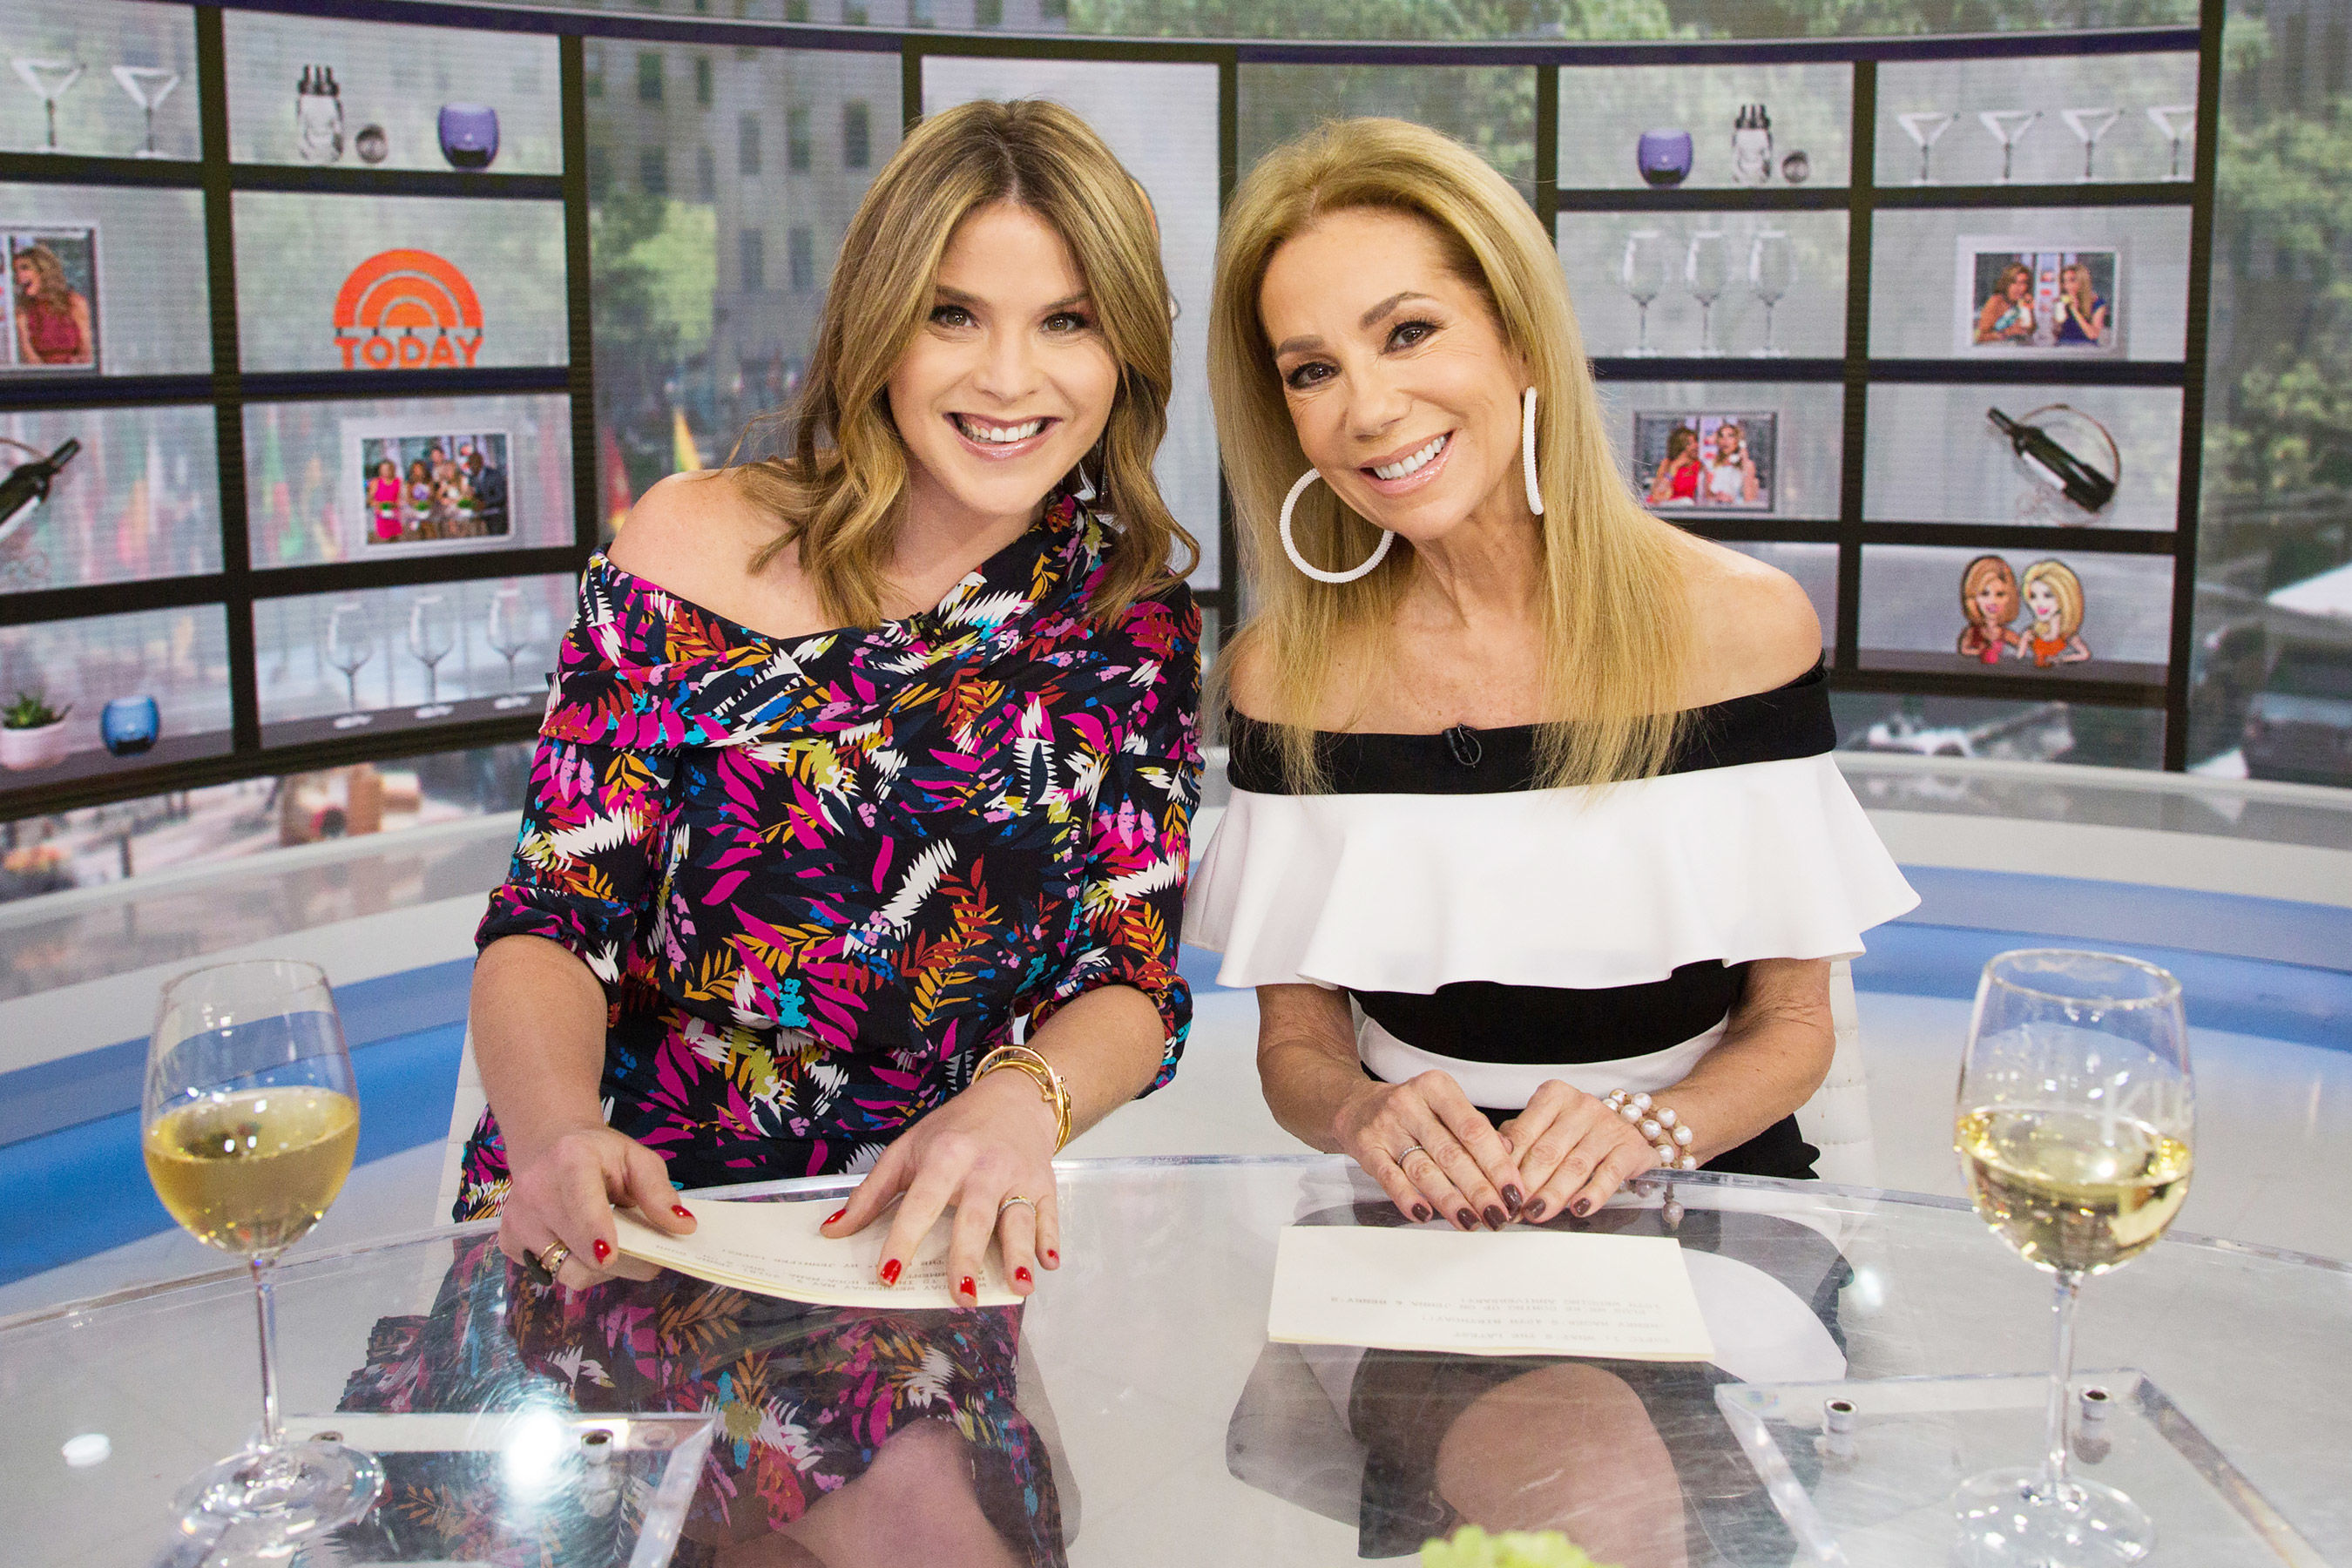 Jenna Bush Hager Is the Frontrunner to Replace Kathie Lee Gifford on Today Show, Source Says